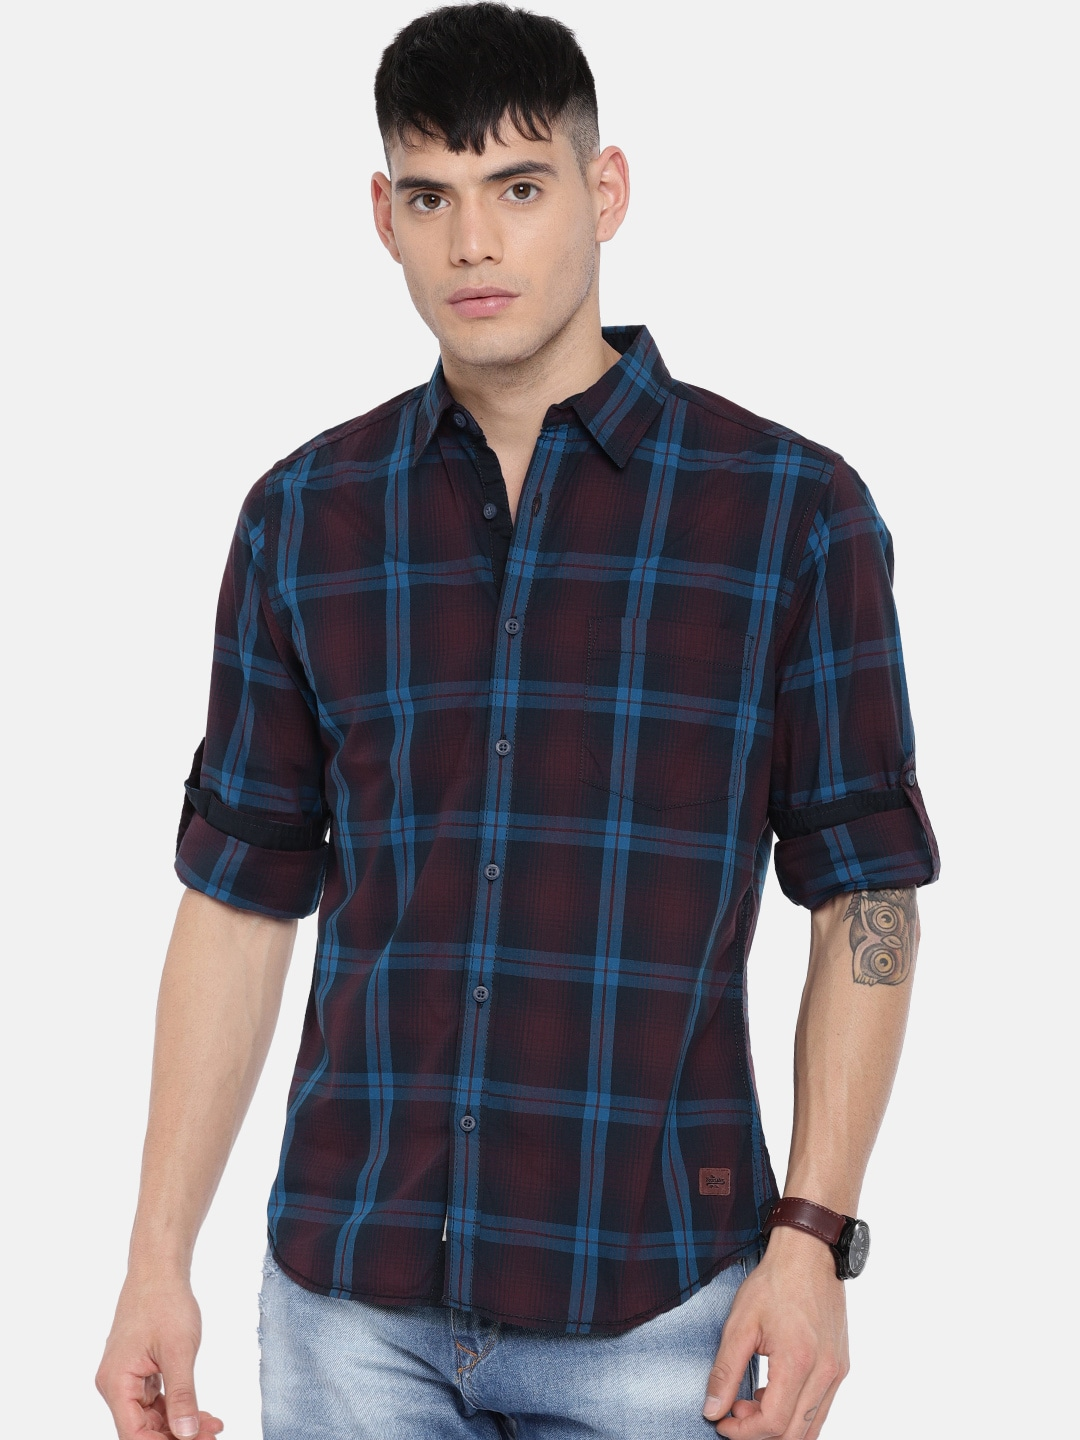 Buy Roadster Blue & Maroon Regular Fit Checked Men's Casual Shirt At Best Price